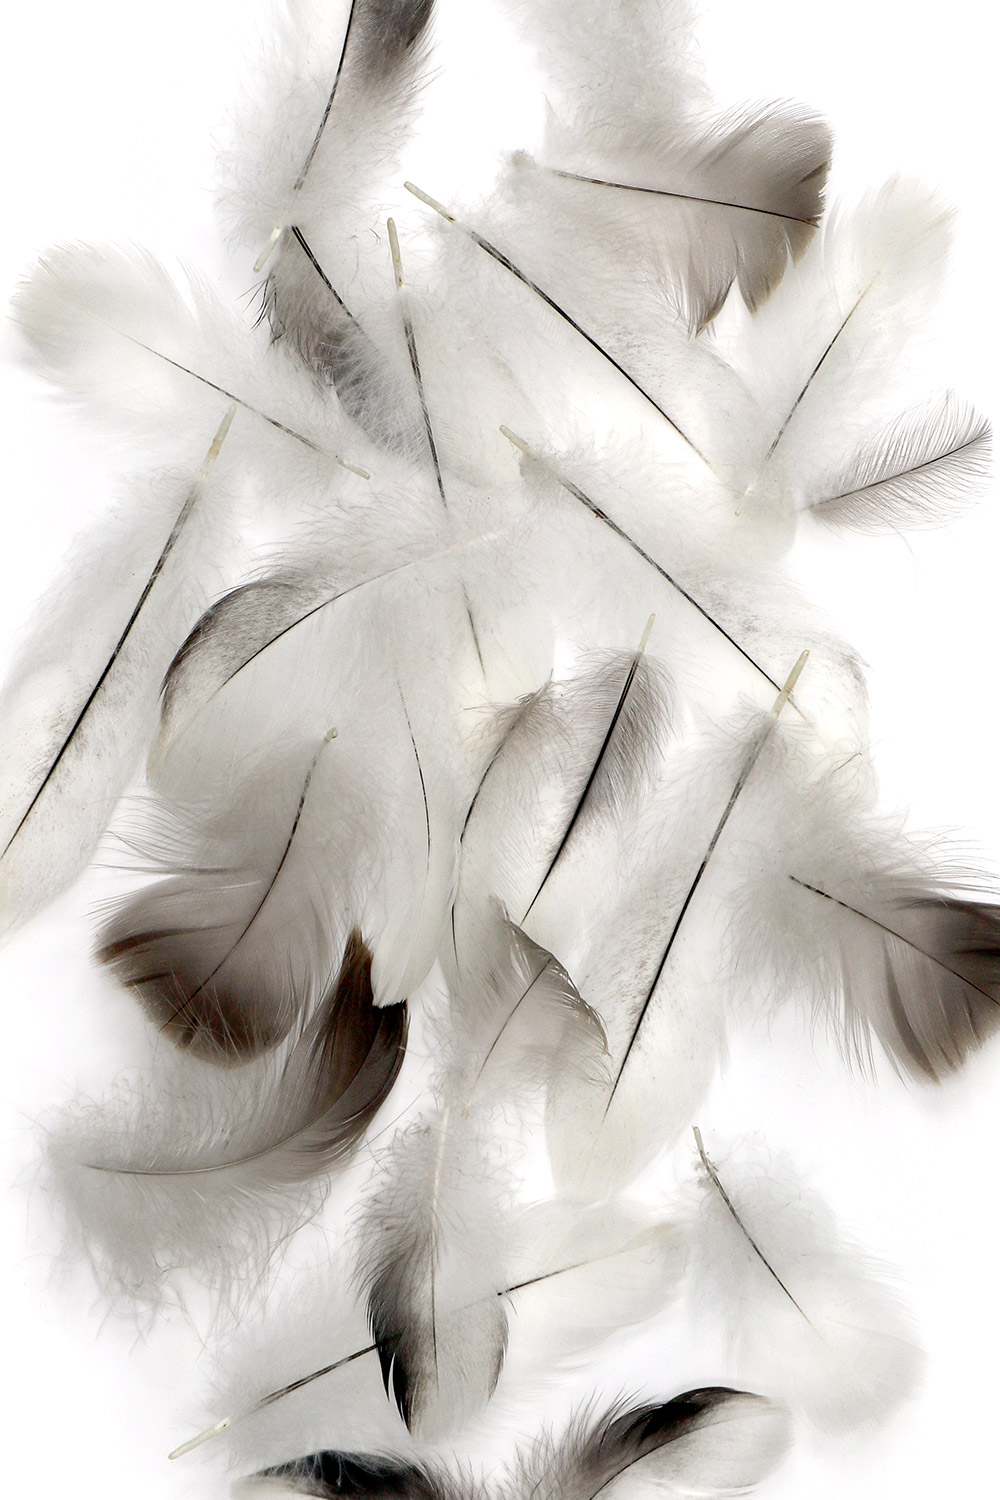 needles in a featherstack